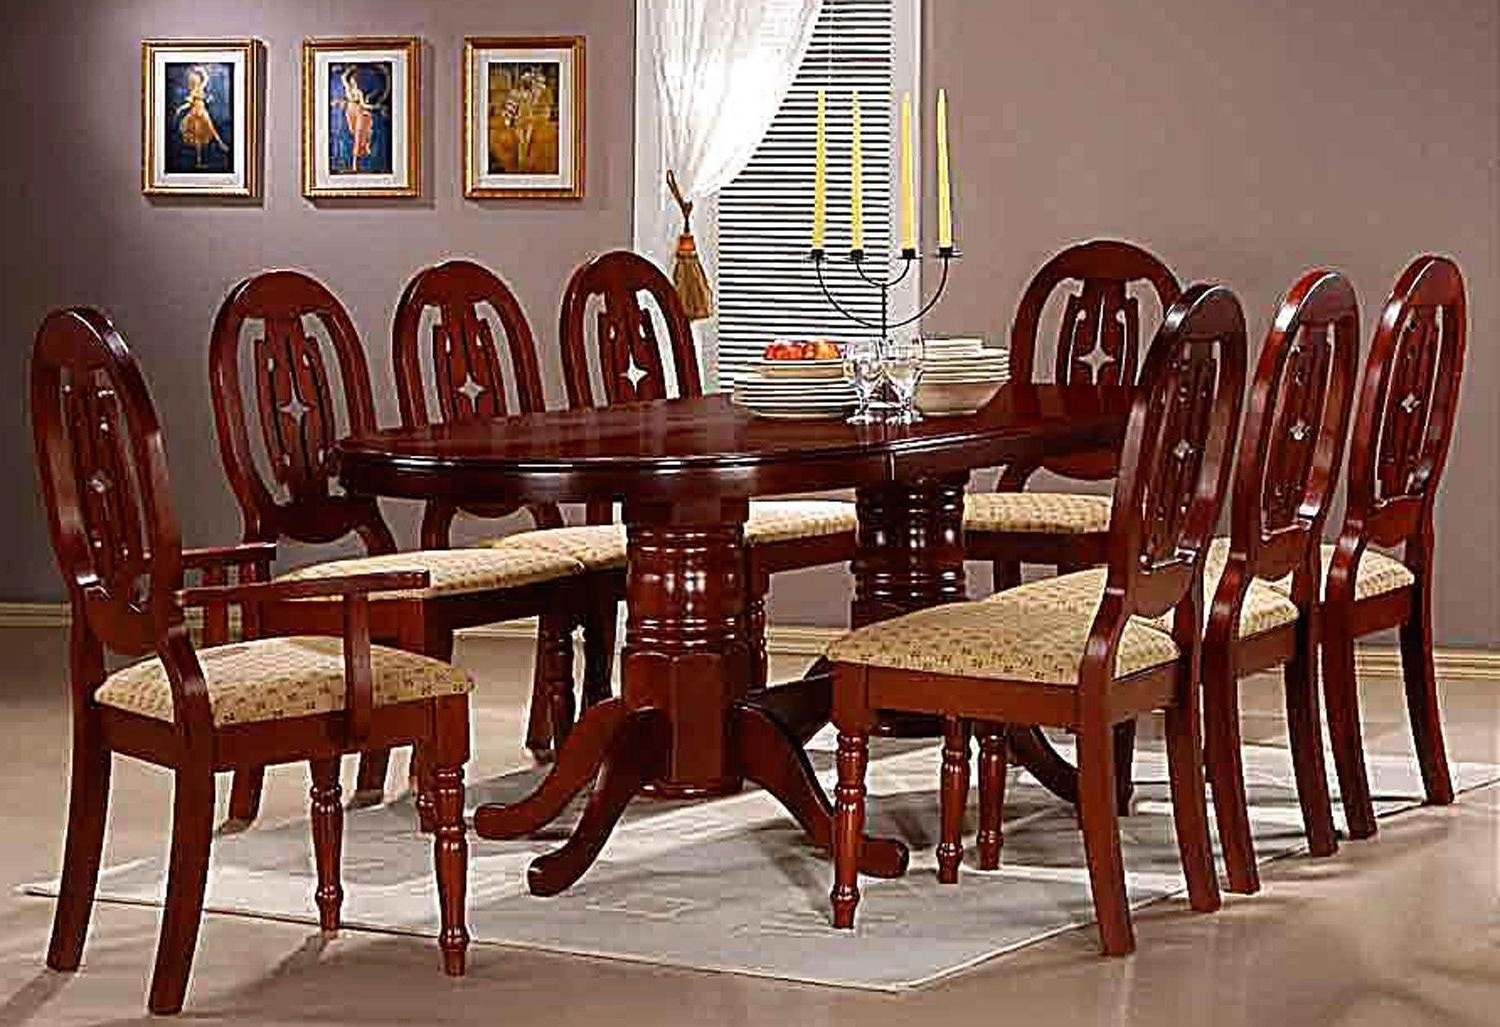 2018 Wooden 8 Seater Dinning Table Set Glow Finish With Chairs. – Gunjan with regard to 10 Seater Dining Tables And Chairs